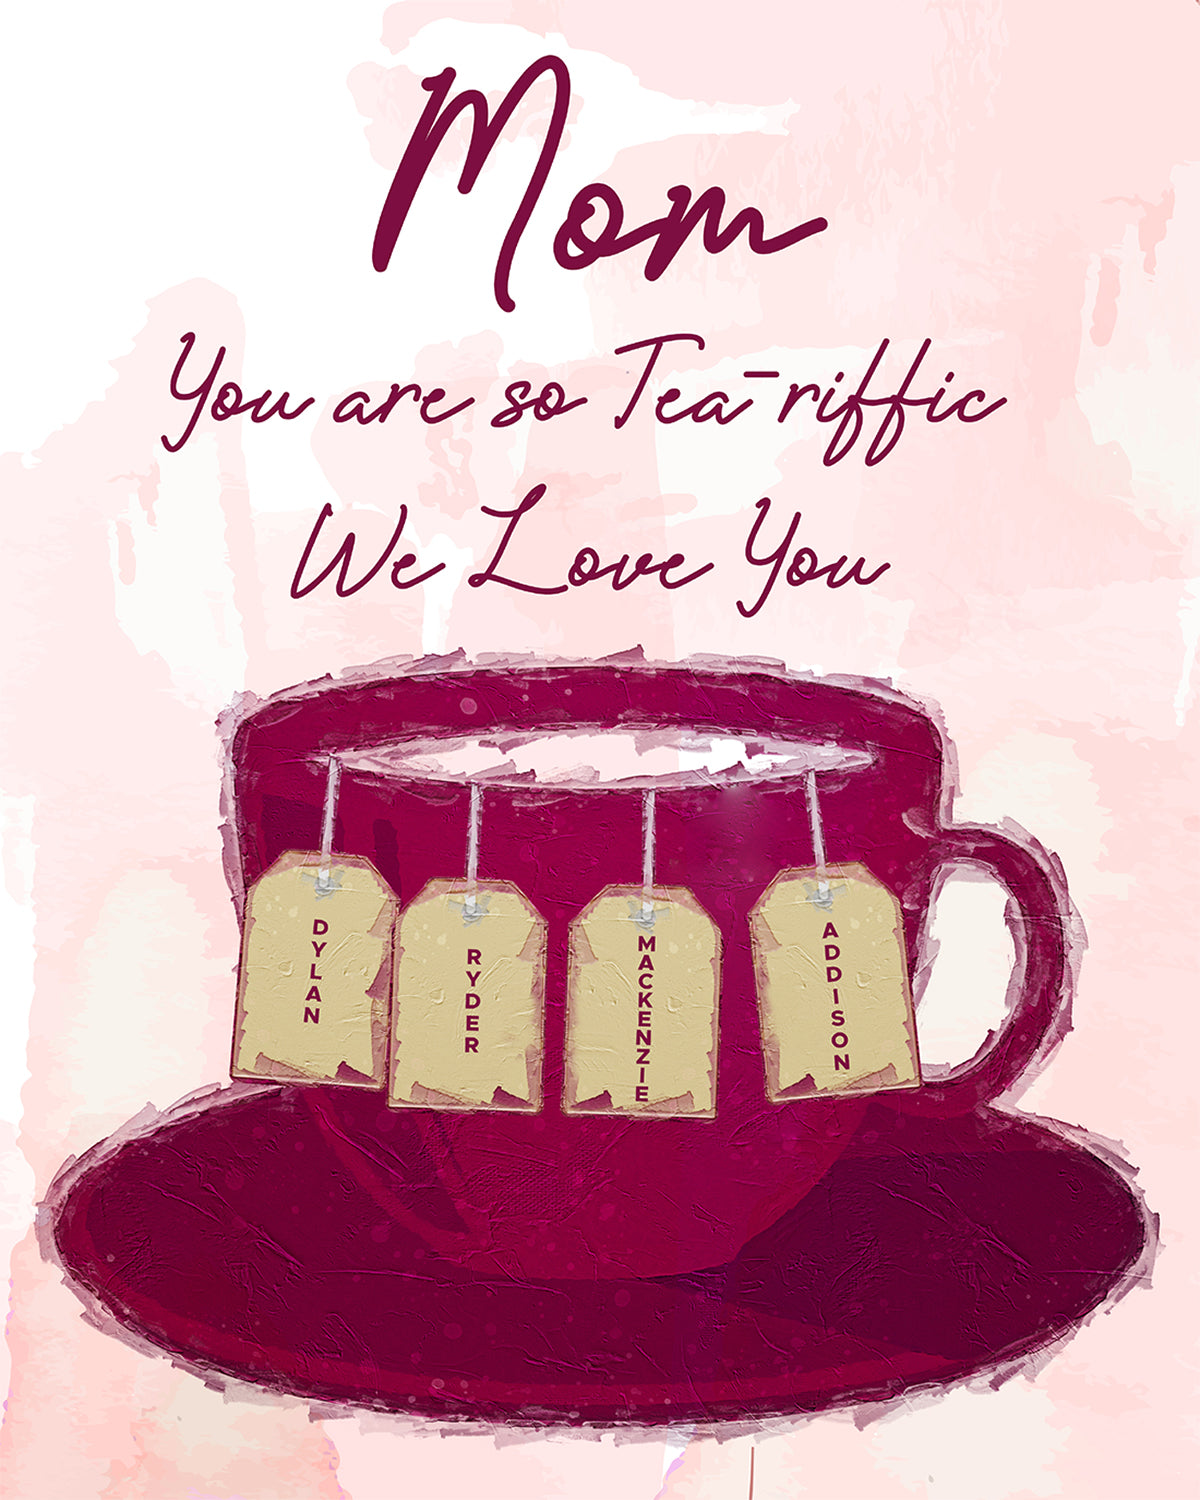 Mom You Are So Tea-rrific - We Love You, (Your Name/s) - Customizable Wall Decor Art - Print, Poster & Canvas Sizes - Gift for Mom From Children